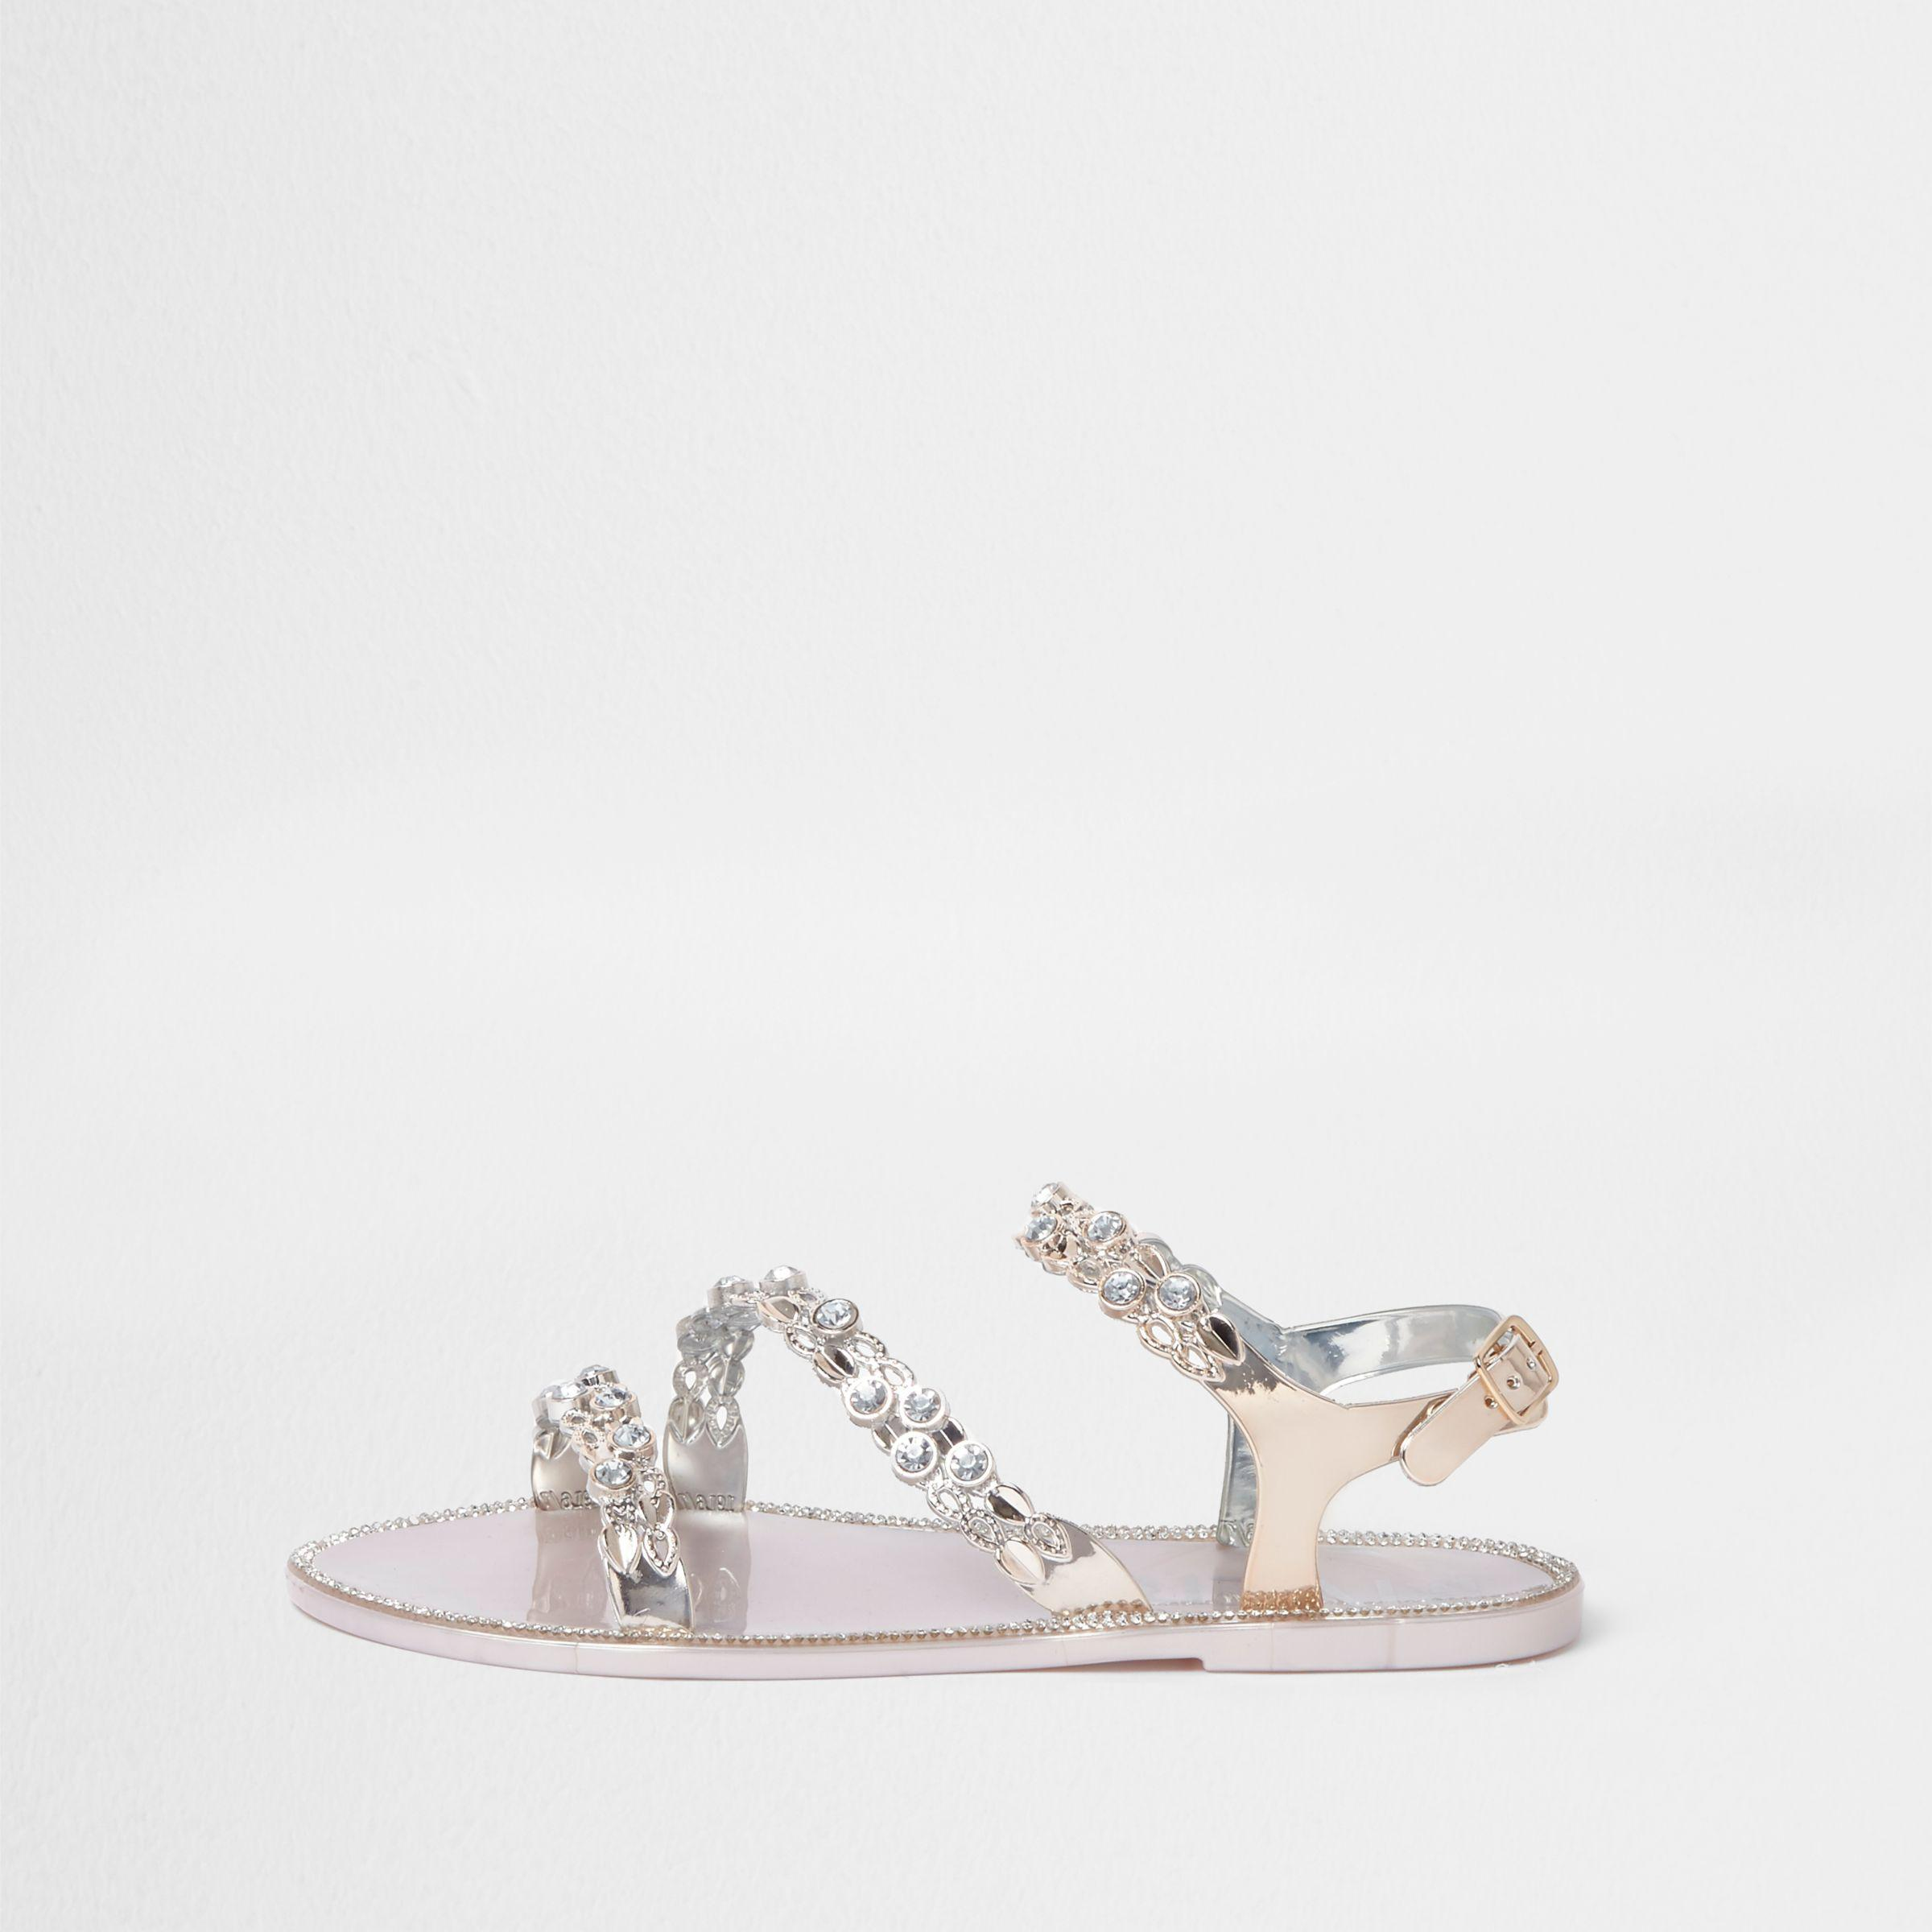 aaffbab0af1c River Island Gold Jewel Strap Jelly Sandals in Metallic - Lyst